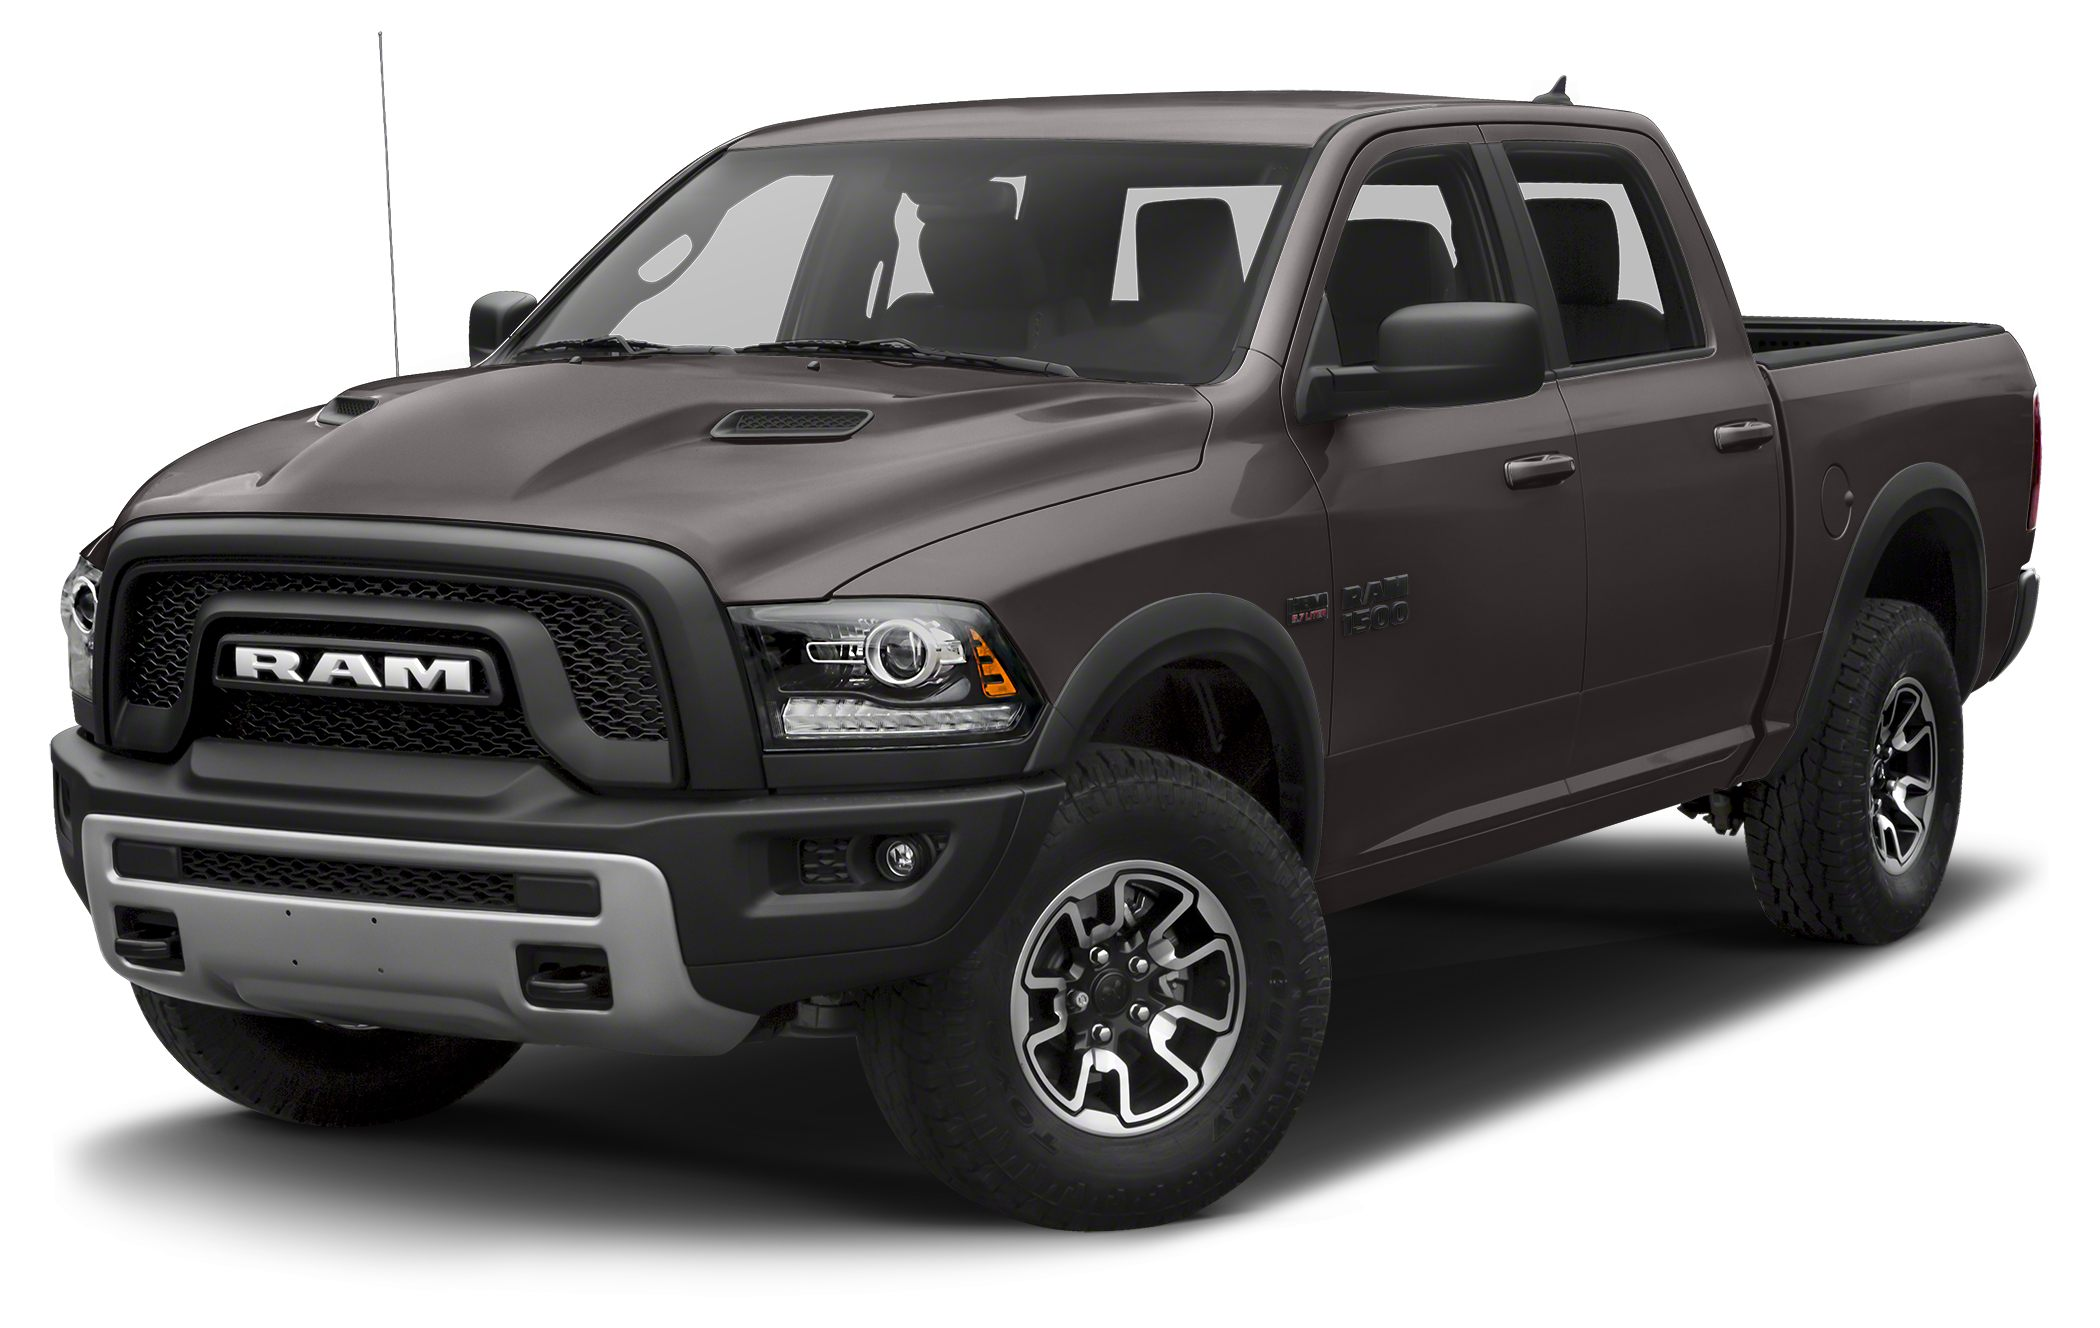 2016 RAM 1500 Rebel At Advantage Chrysler you know you are getting a safe and dependable vehicle